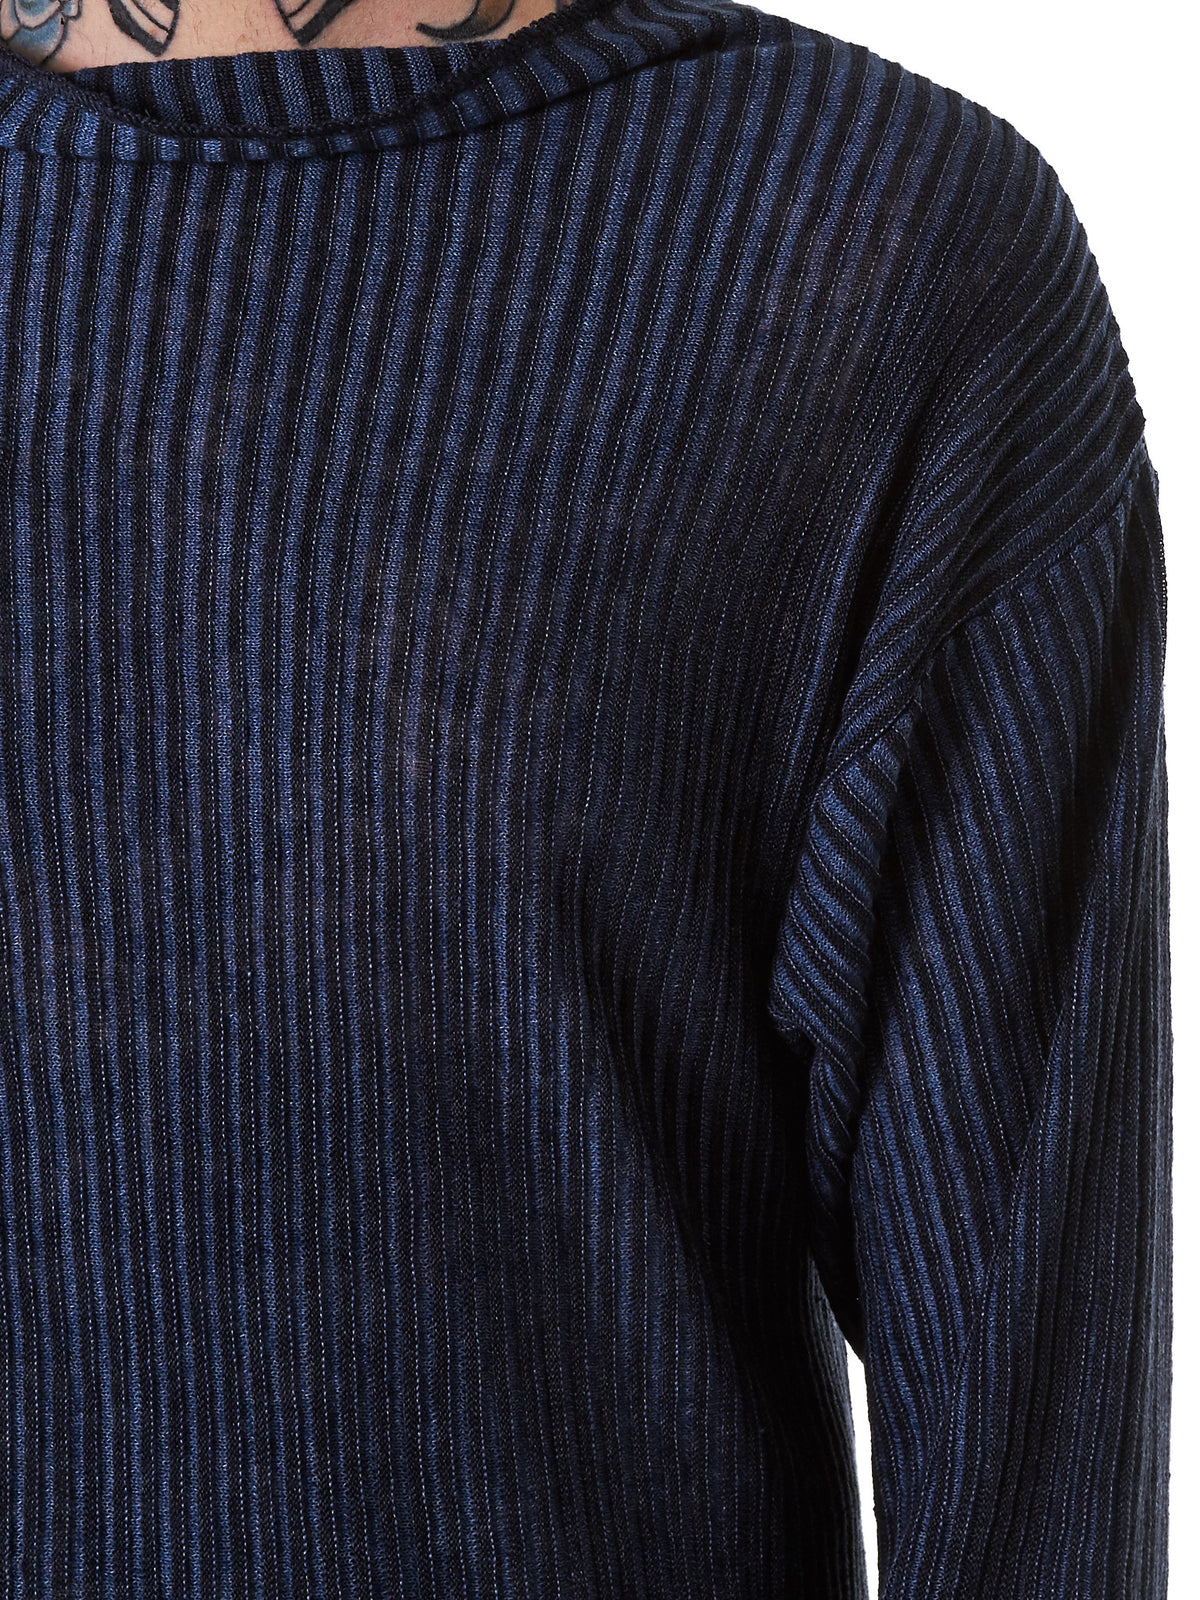 Cowled Knit Pullover (DENIM-KNIT-PULL-BLUE) - H. Lorenzo